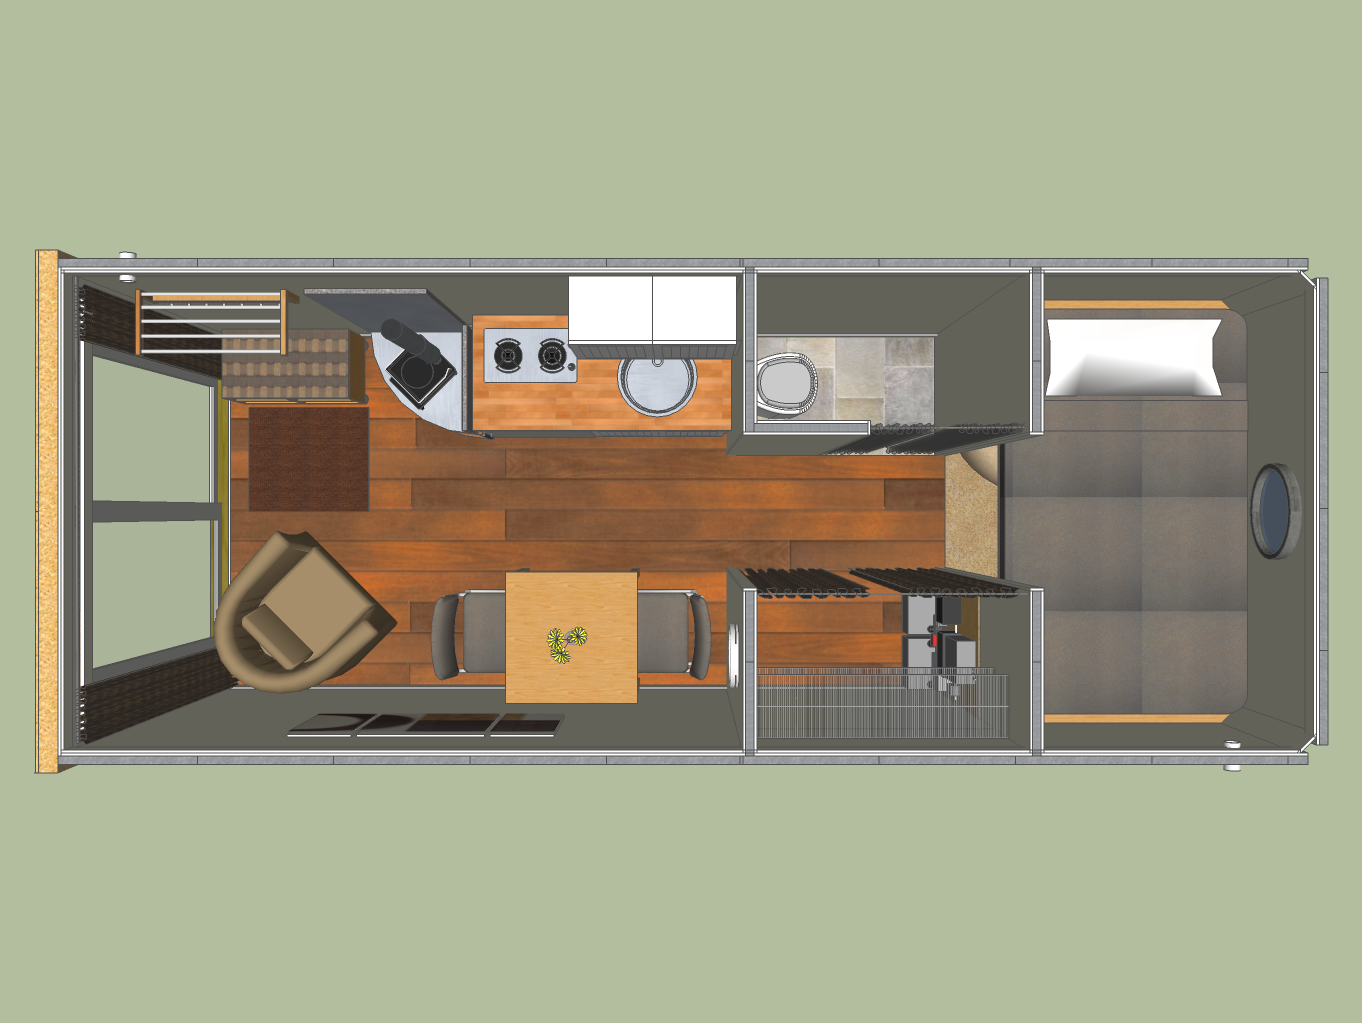 40-foot container home pictures | floor plan for 8' x 40' shipping